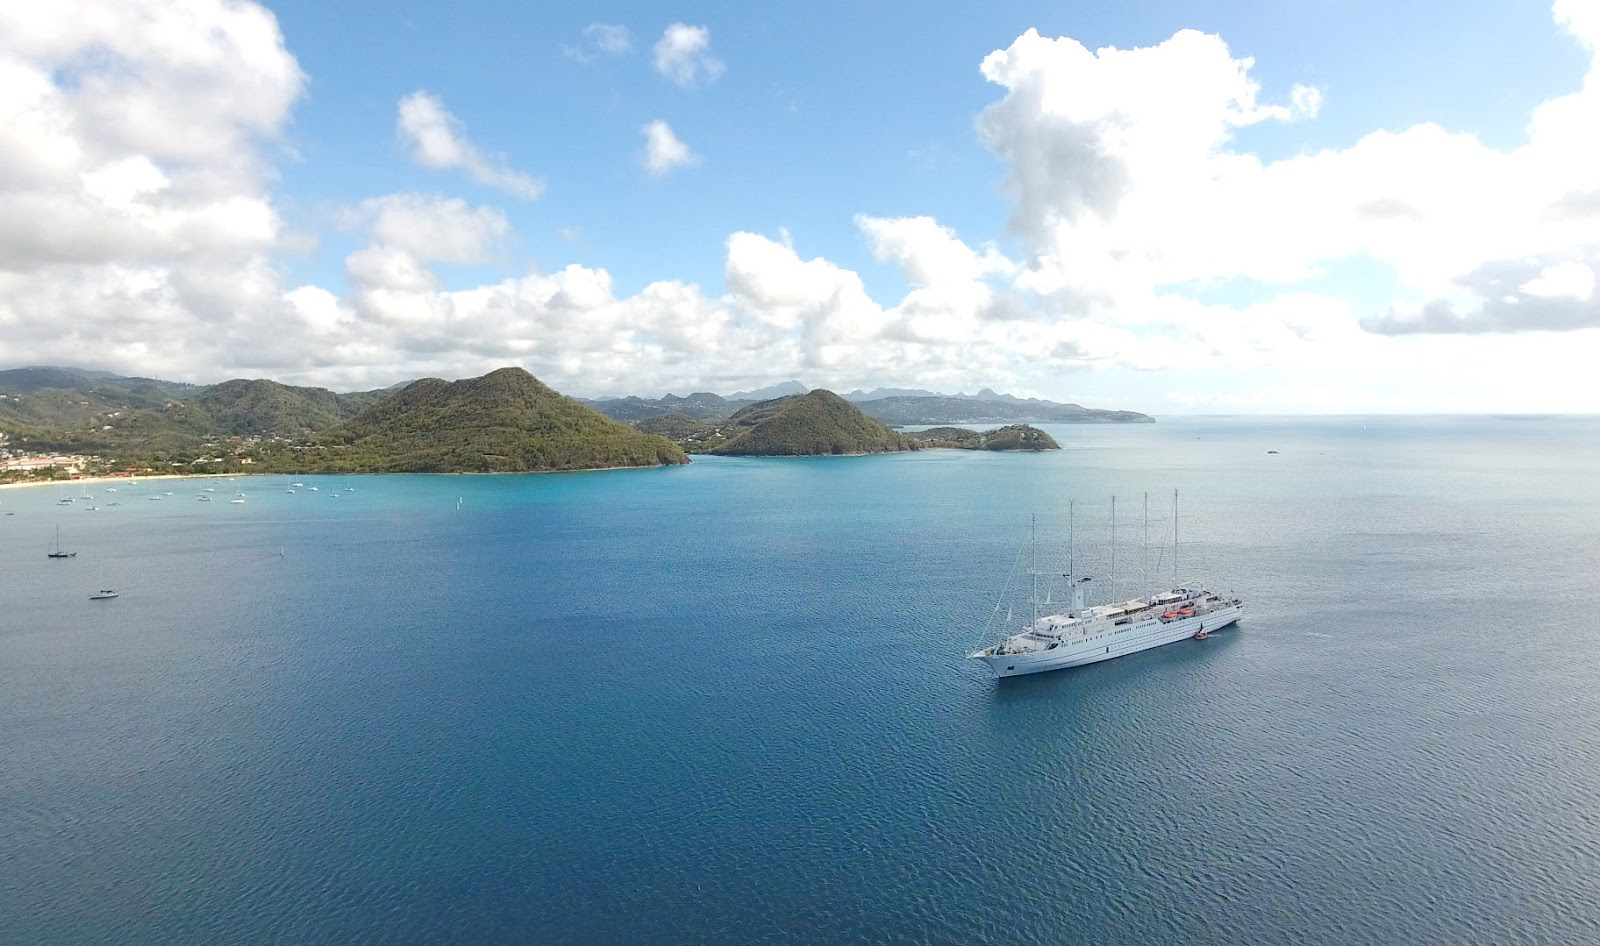 Wind Surf in Rodney Bay, St. Lucia (drone image)